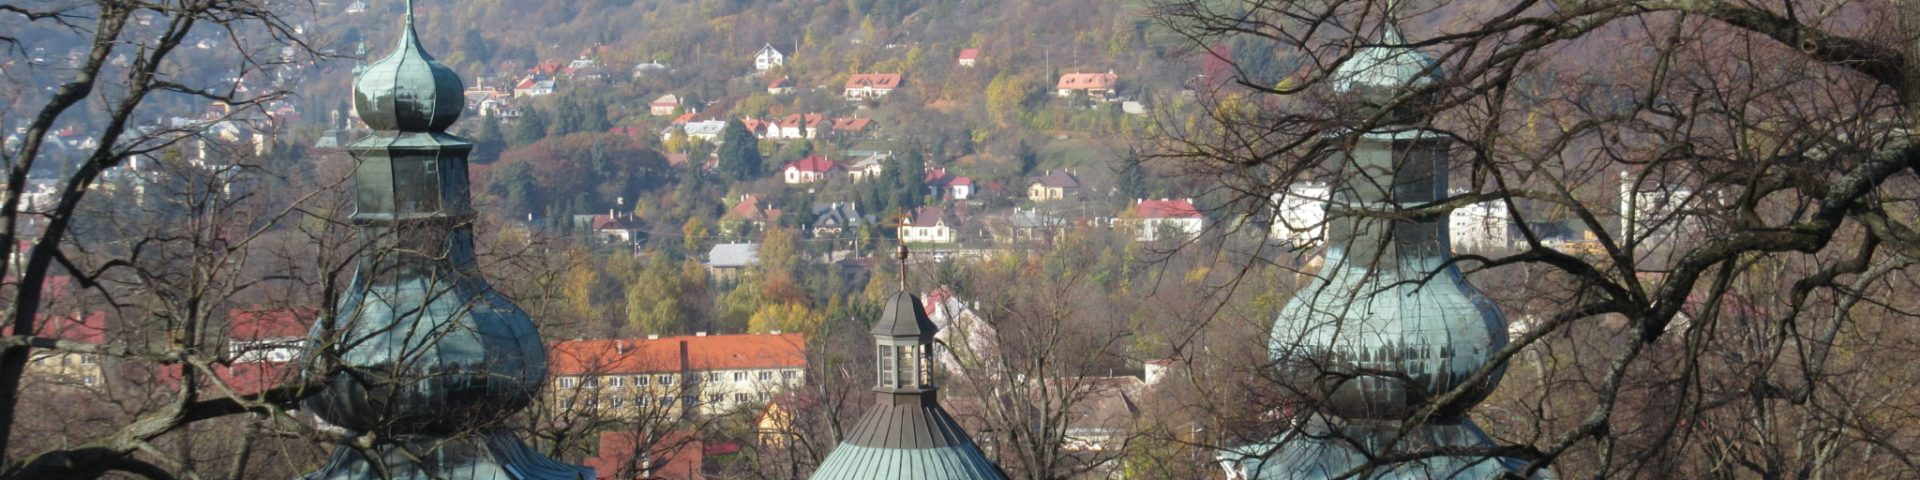 Things to see in Slovakia